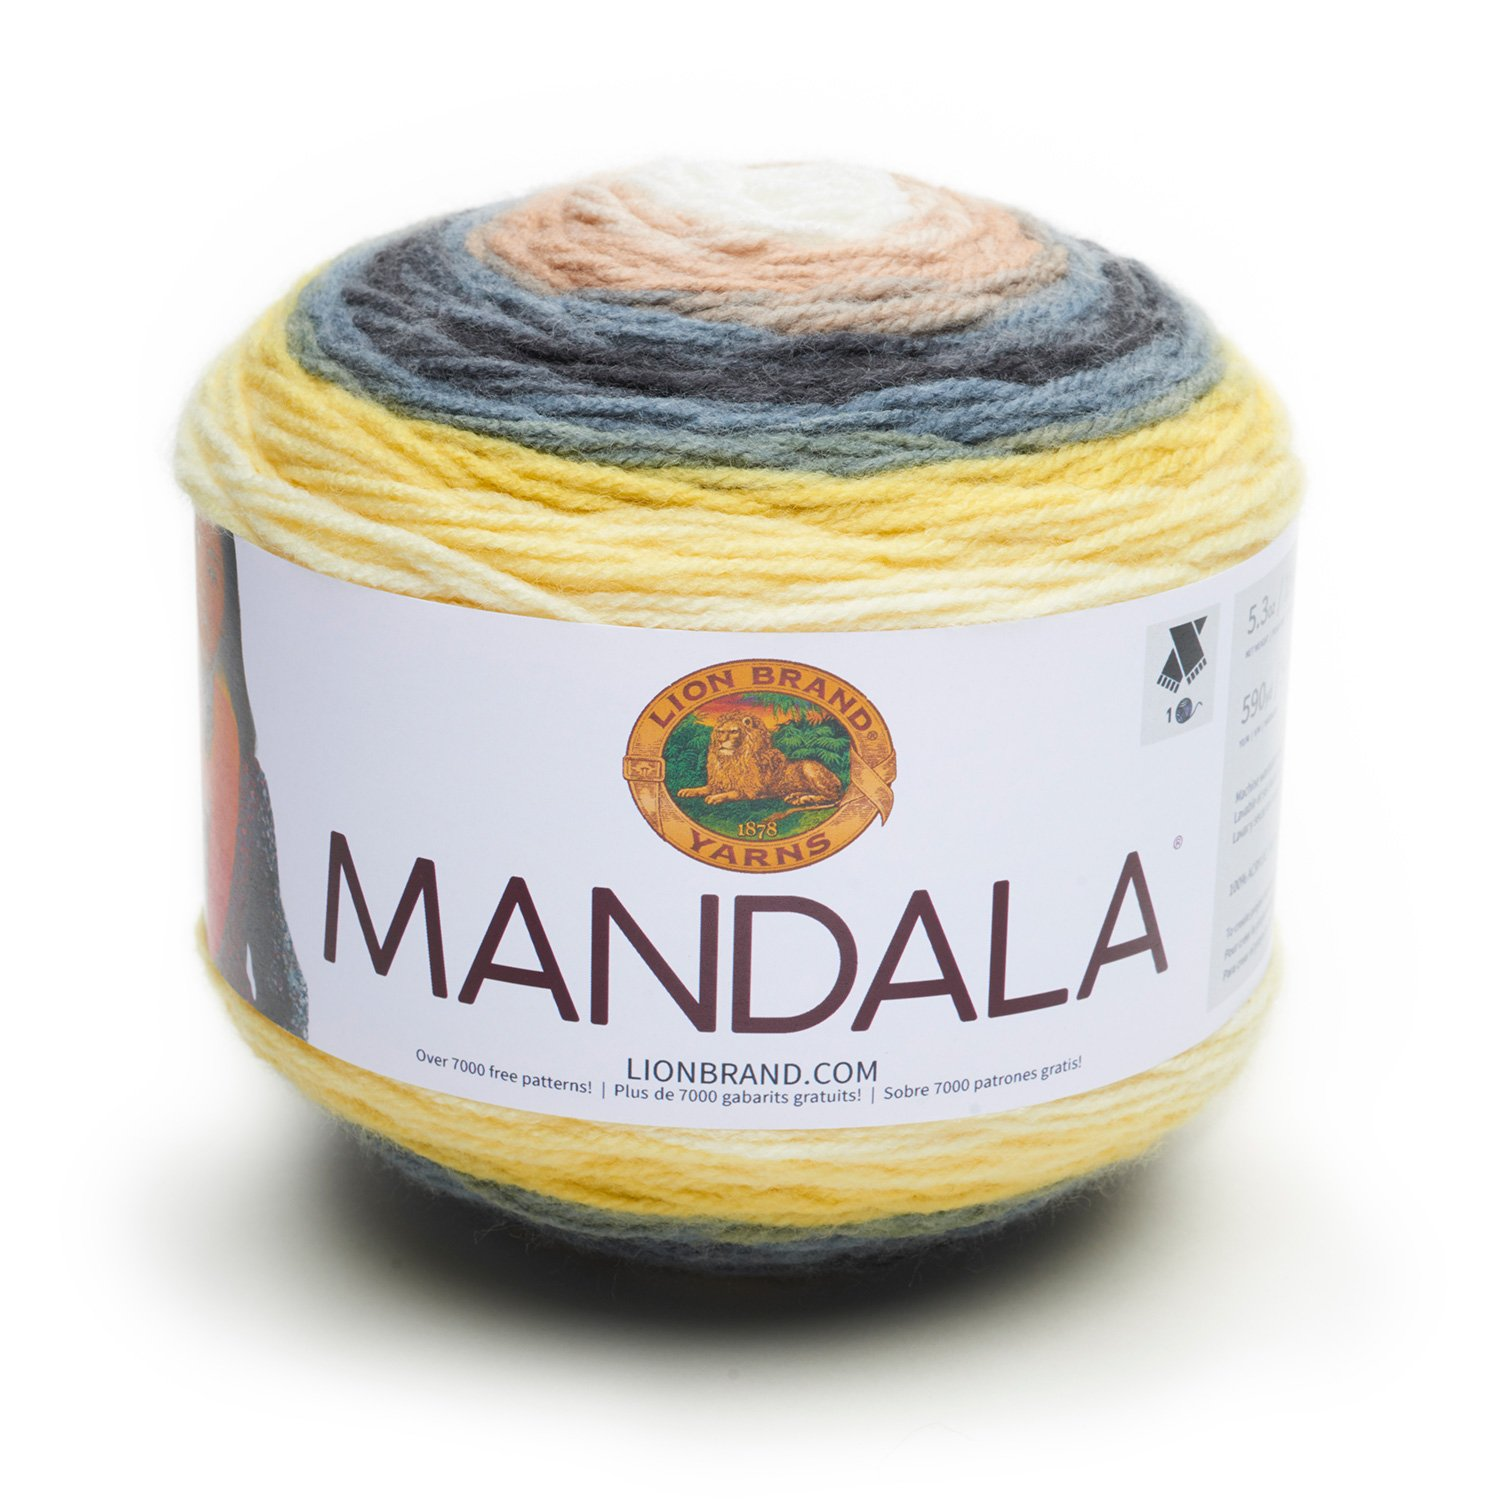 Lion Brand Yarn 525-200 Mandala Yarn, Wood Nymph Lion Brand Yarn Company